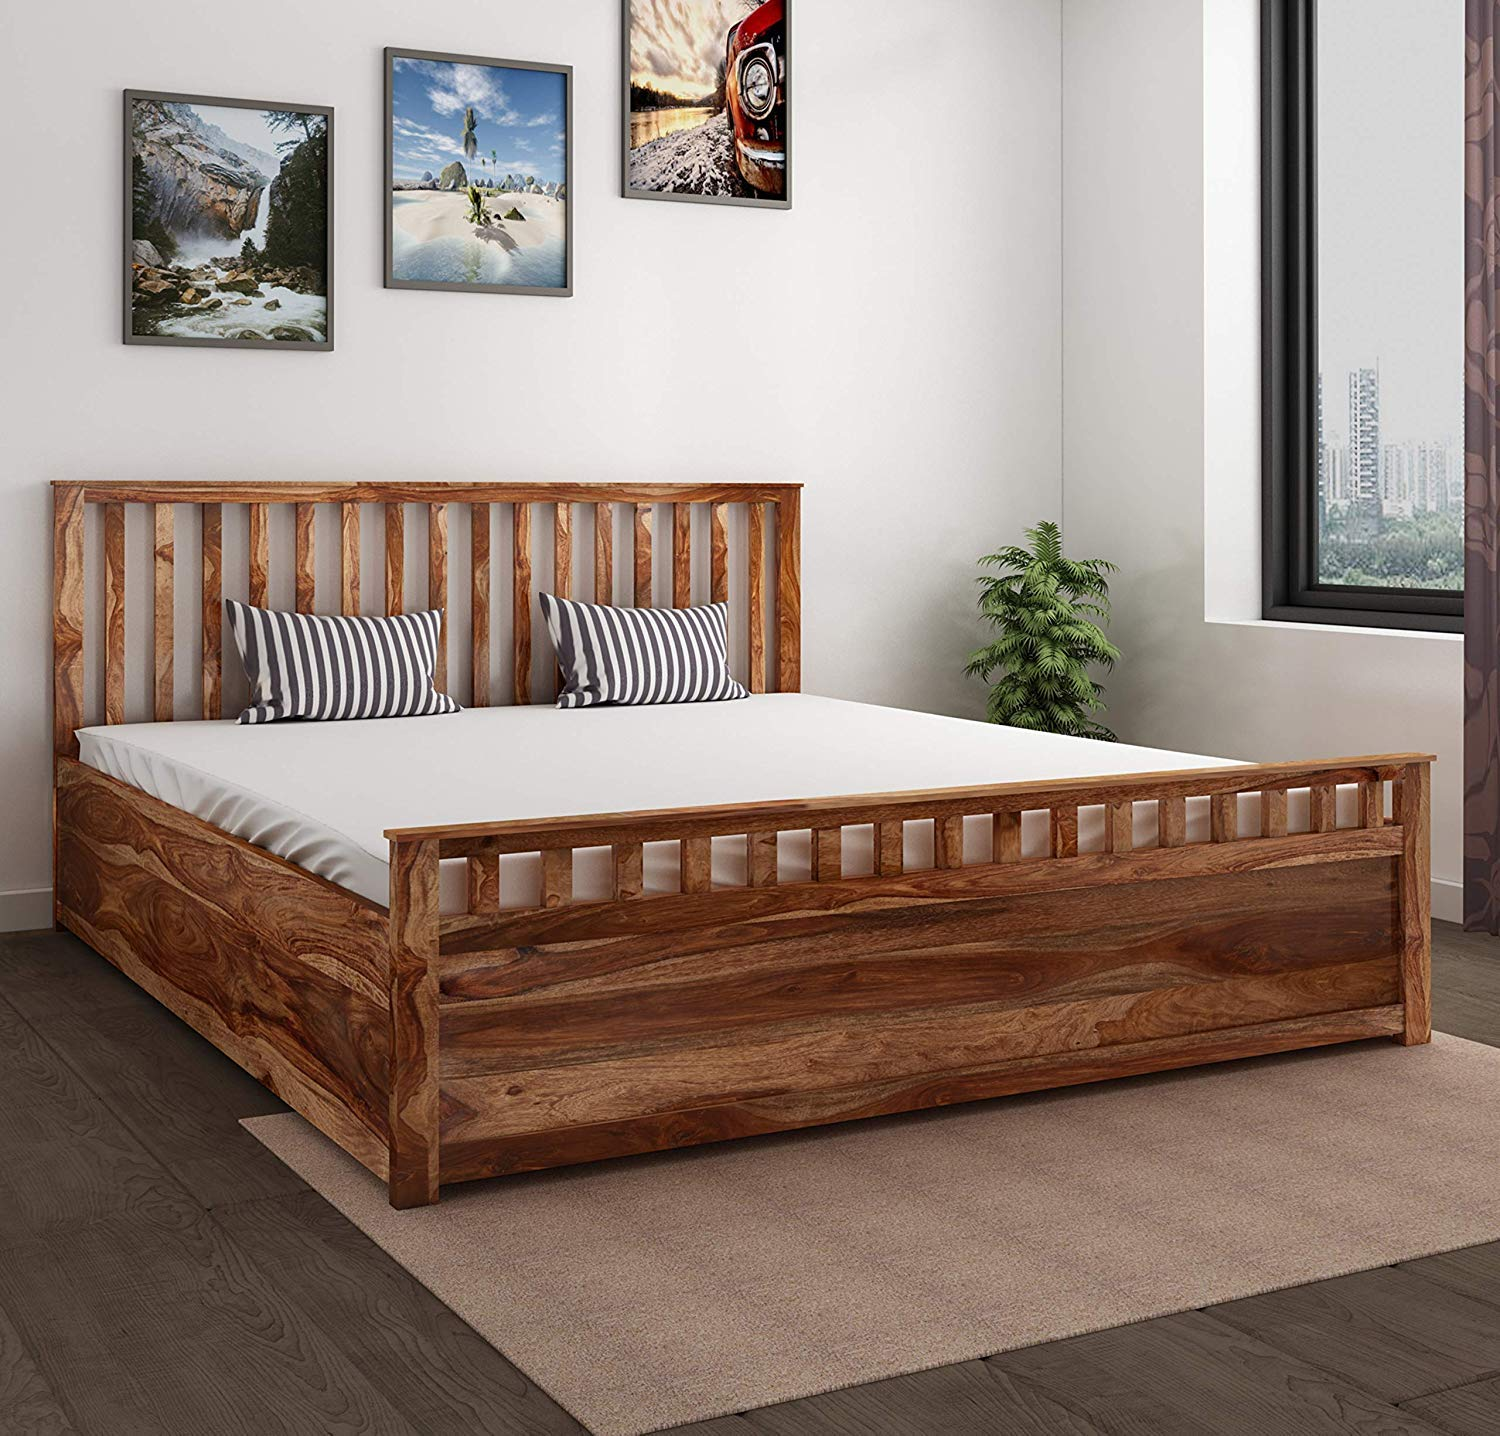 Tolreen King Size Bed for bed Room, king size bed furniture for bedroom  (Honey Medium)